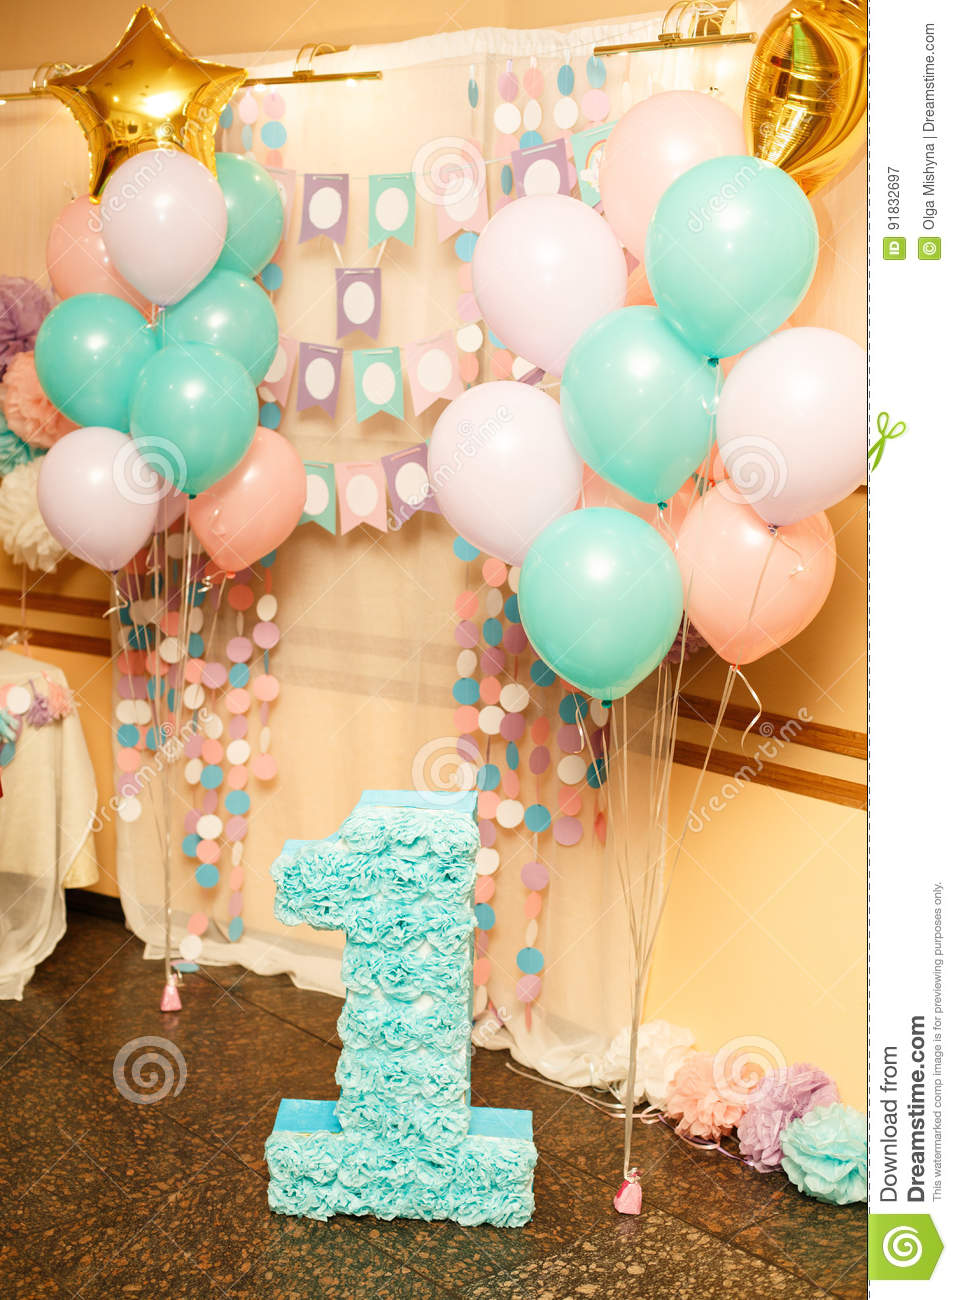 birthday party for child